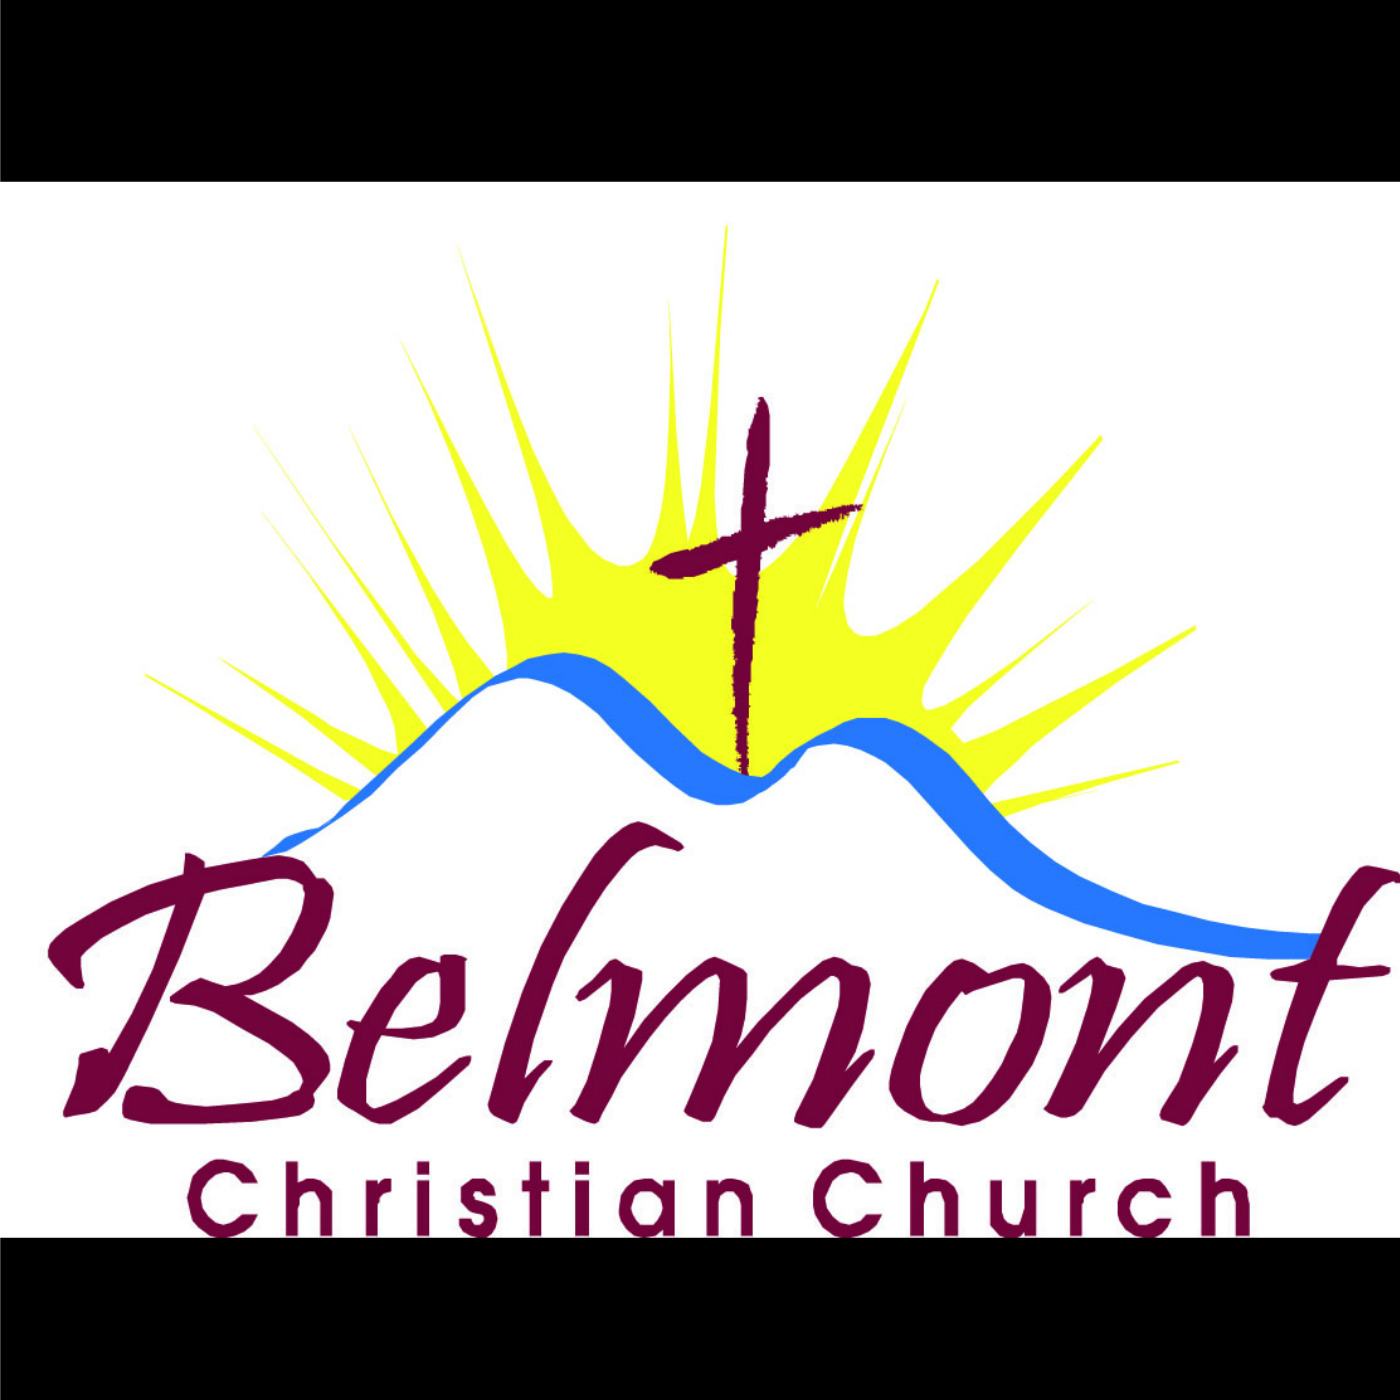 Belmont Christian Church